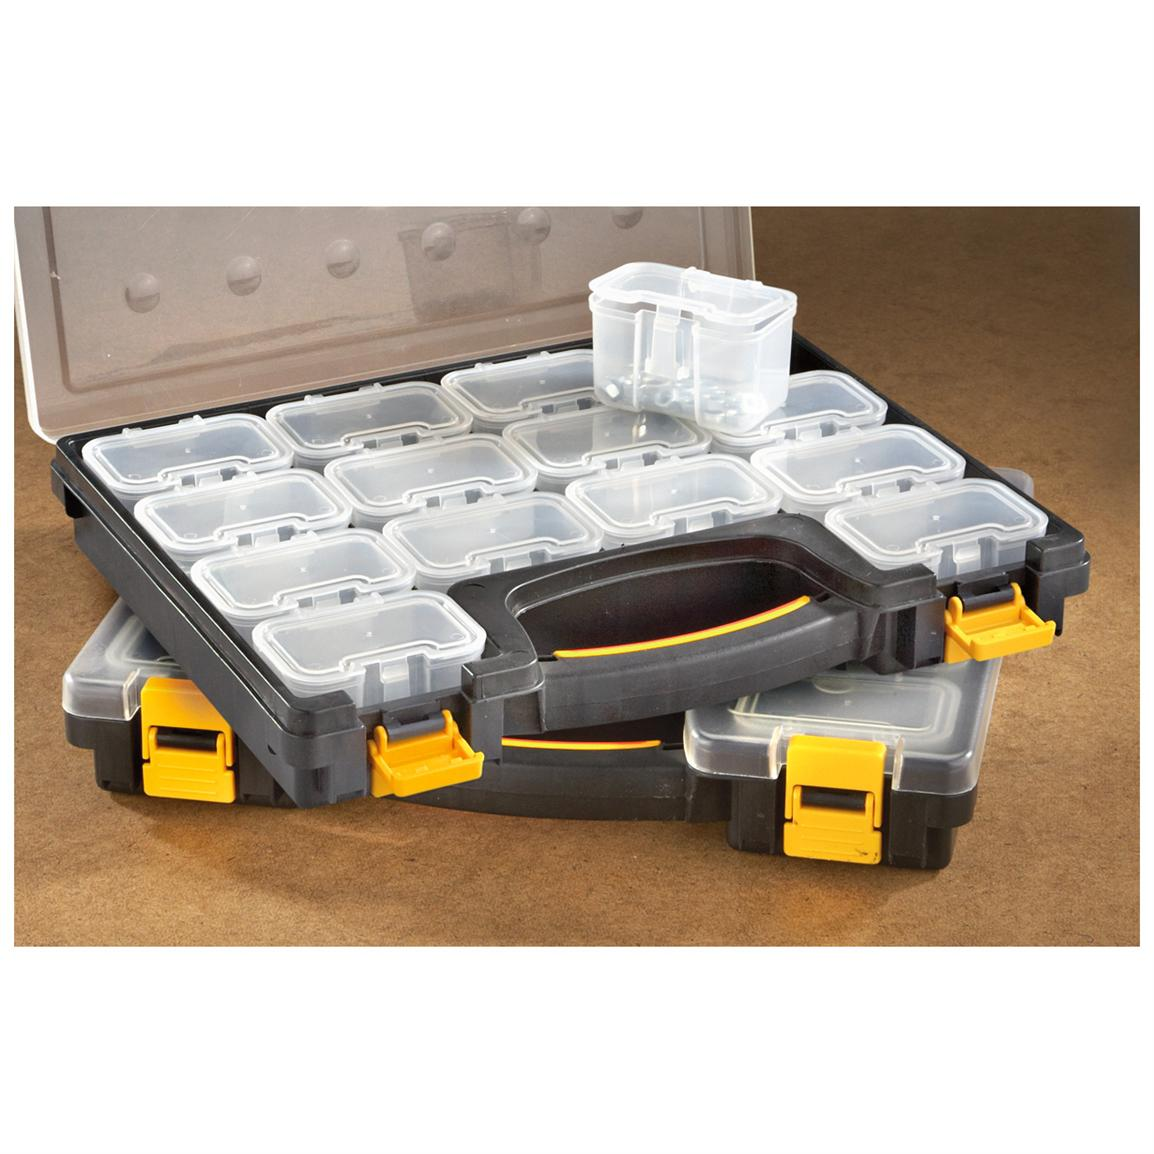 2-Pk. of IIT® 14-caddy Organizers